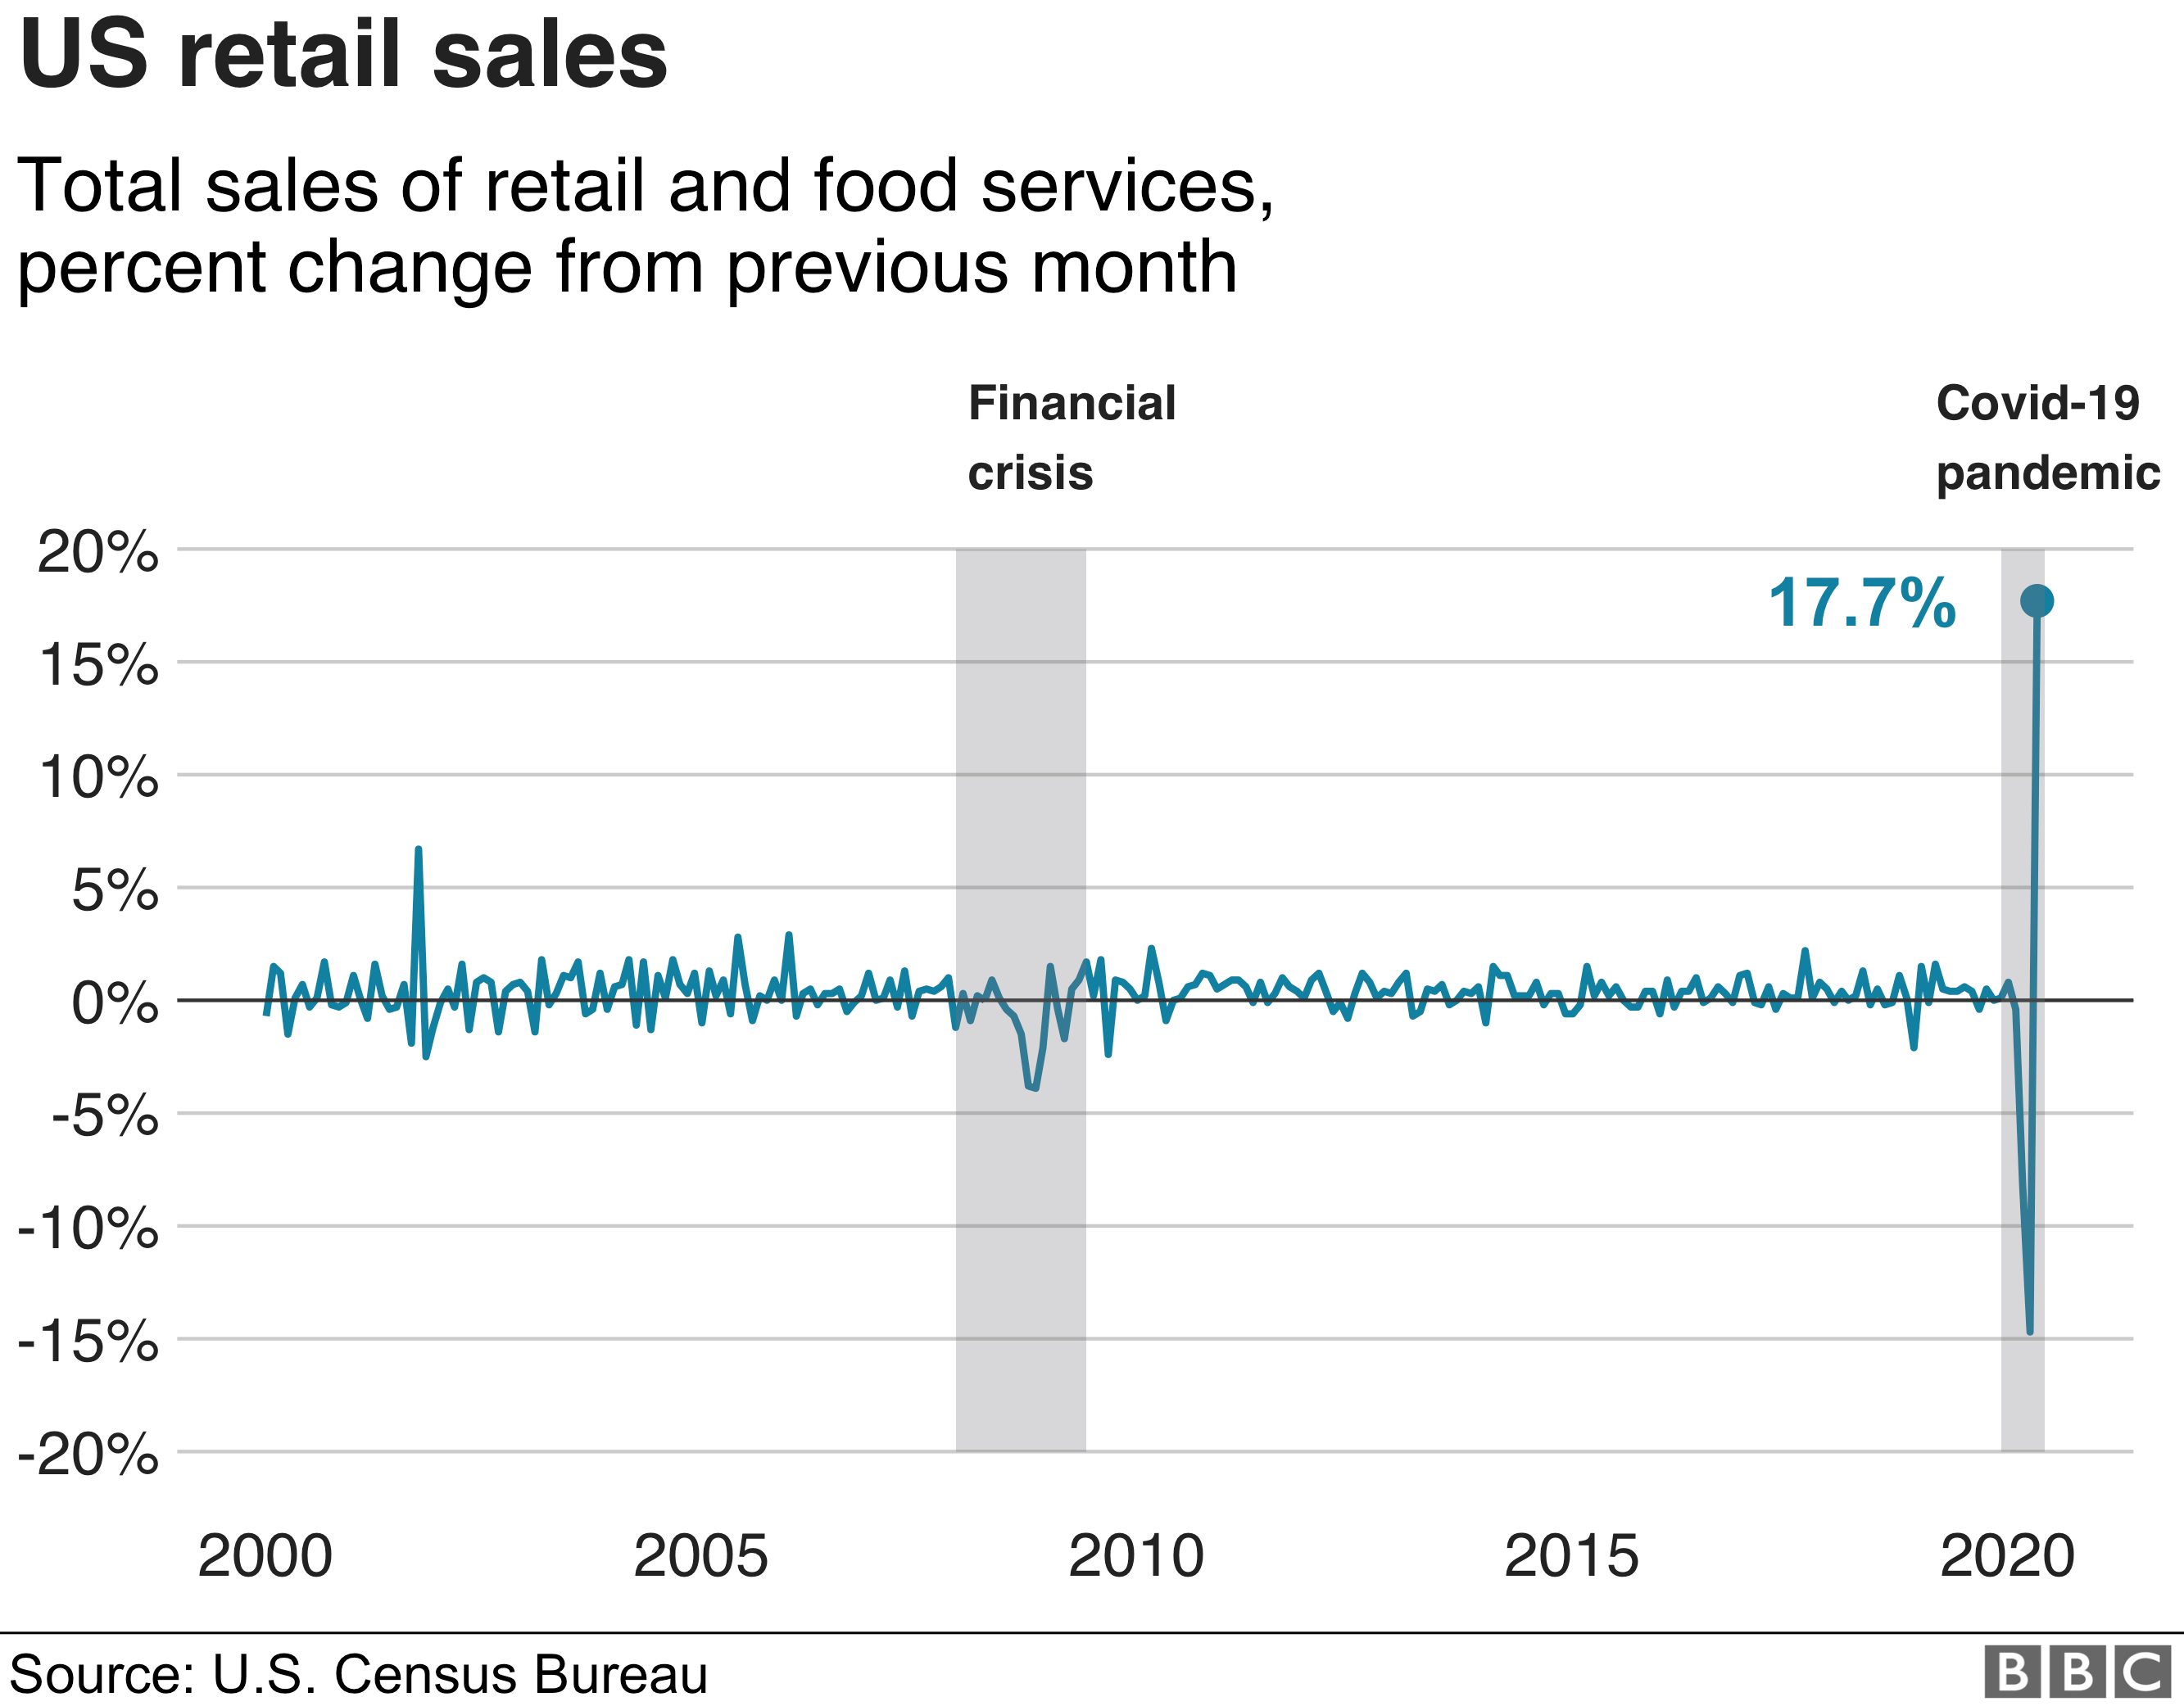 % change in retail sales